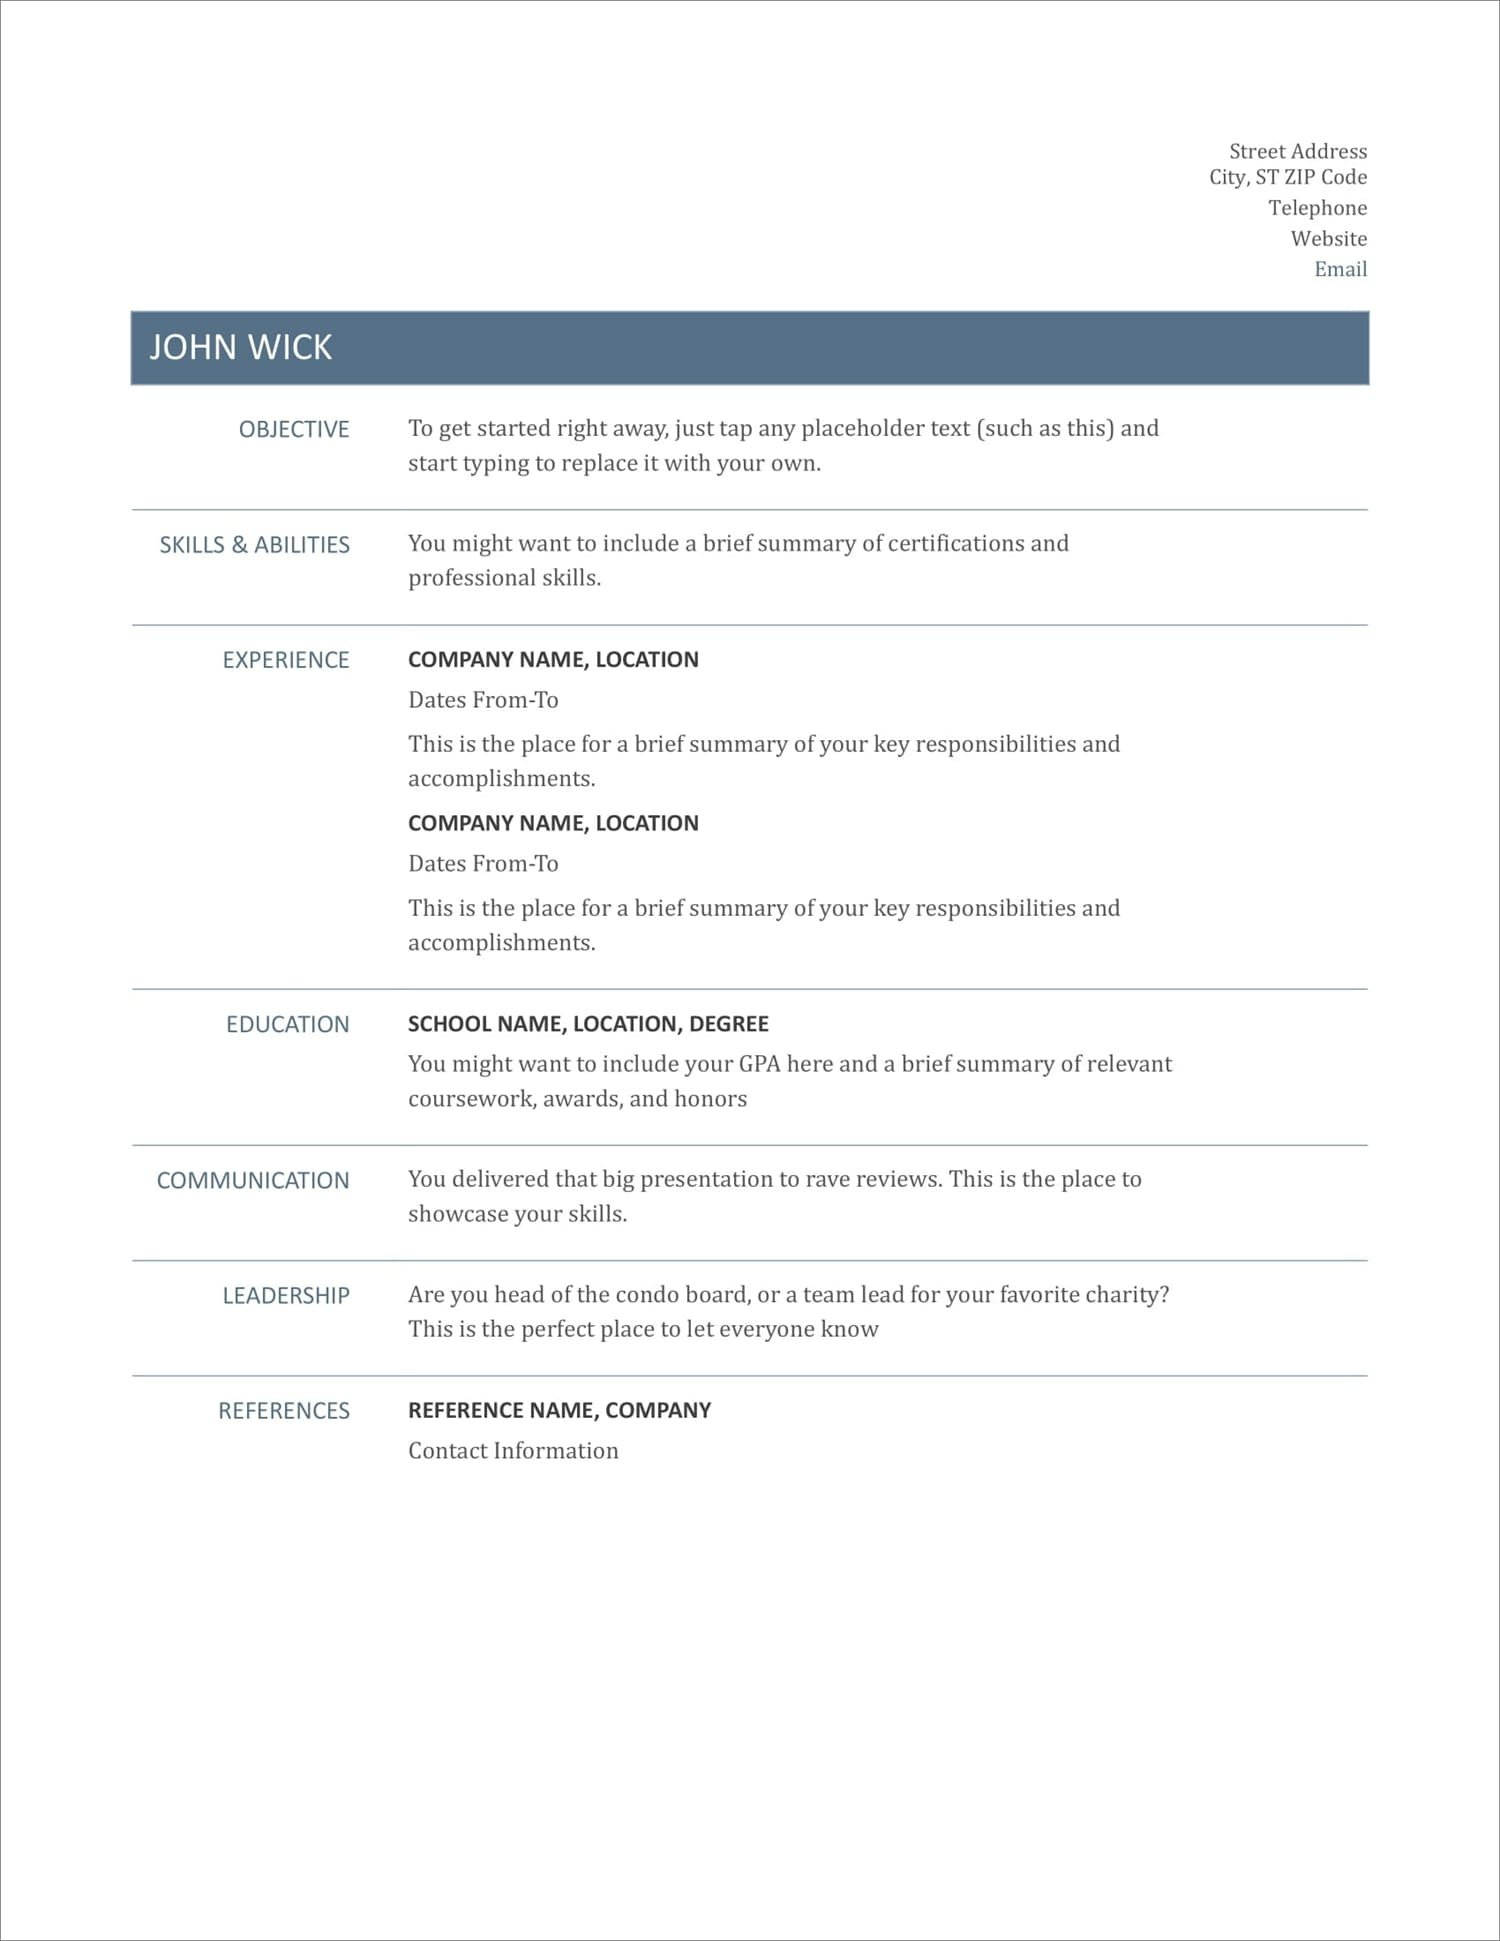 free resume templates for to now medical microsoft word new construction project manager Resume Free Medical Resume Templates Microsoft Word